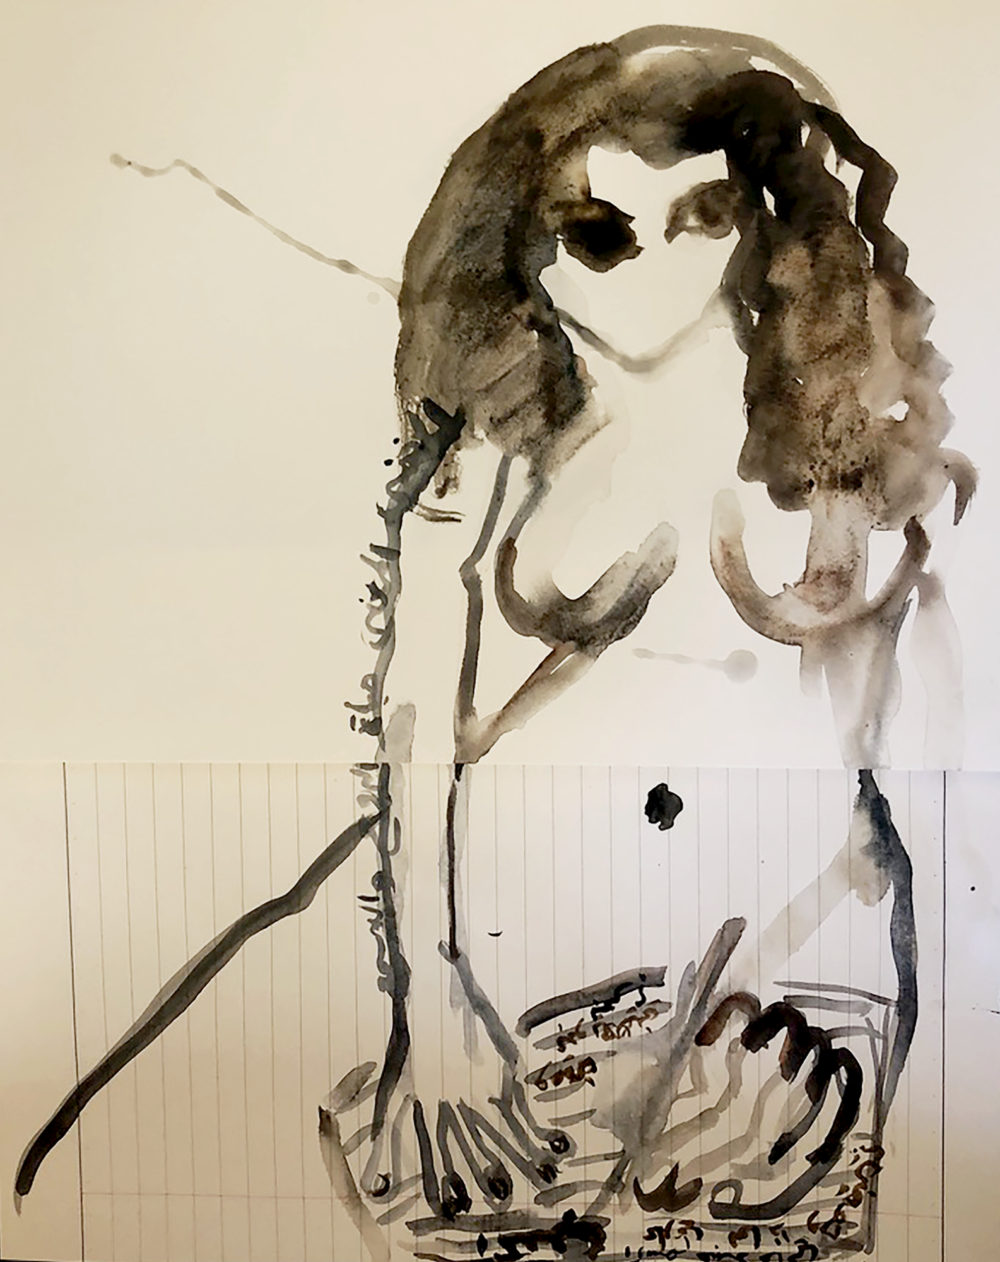 Mounira Al Solh, Self-Portrait, 2020, Mixed media on paper, 11 5/8 x 17 inches (29.7 x 43 cm), Courtesy of the artist